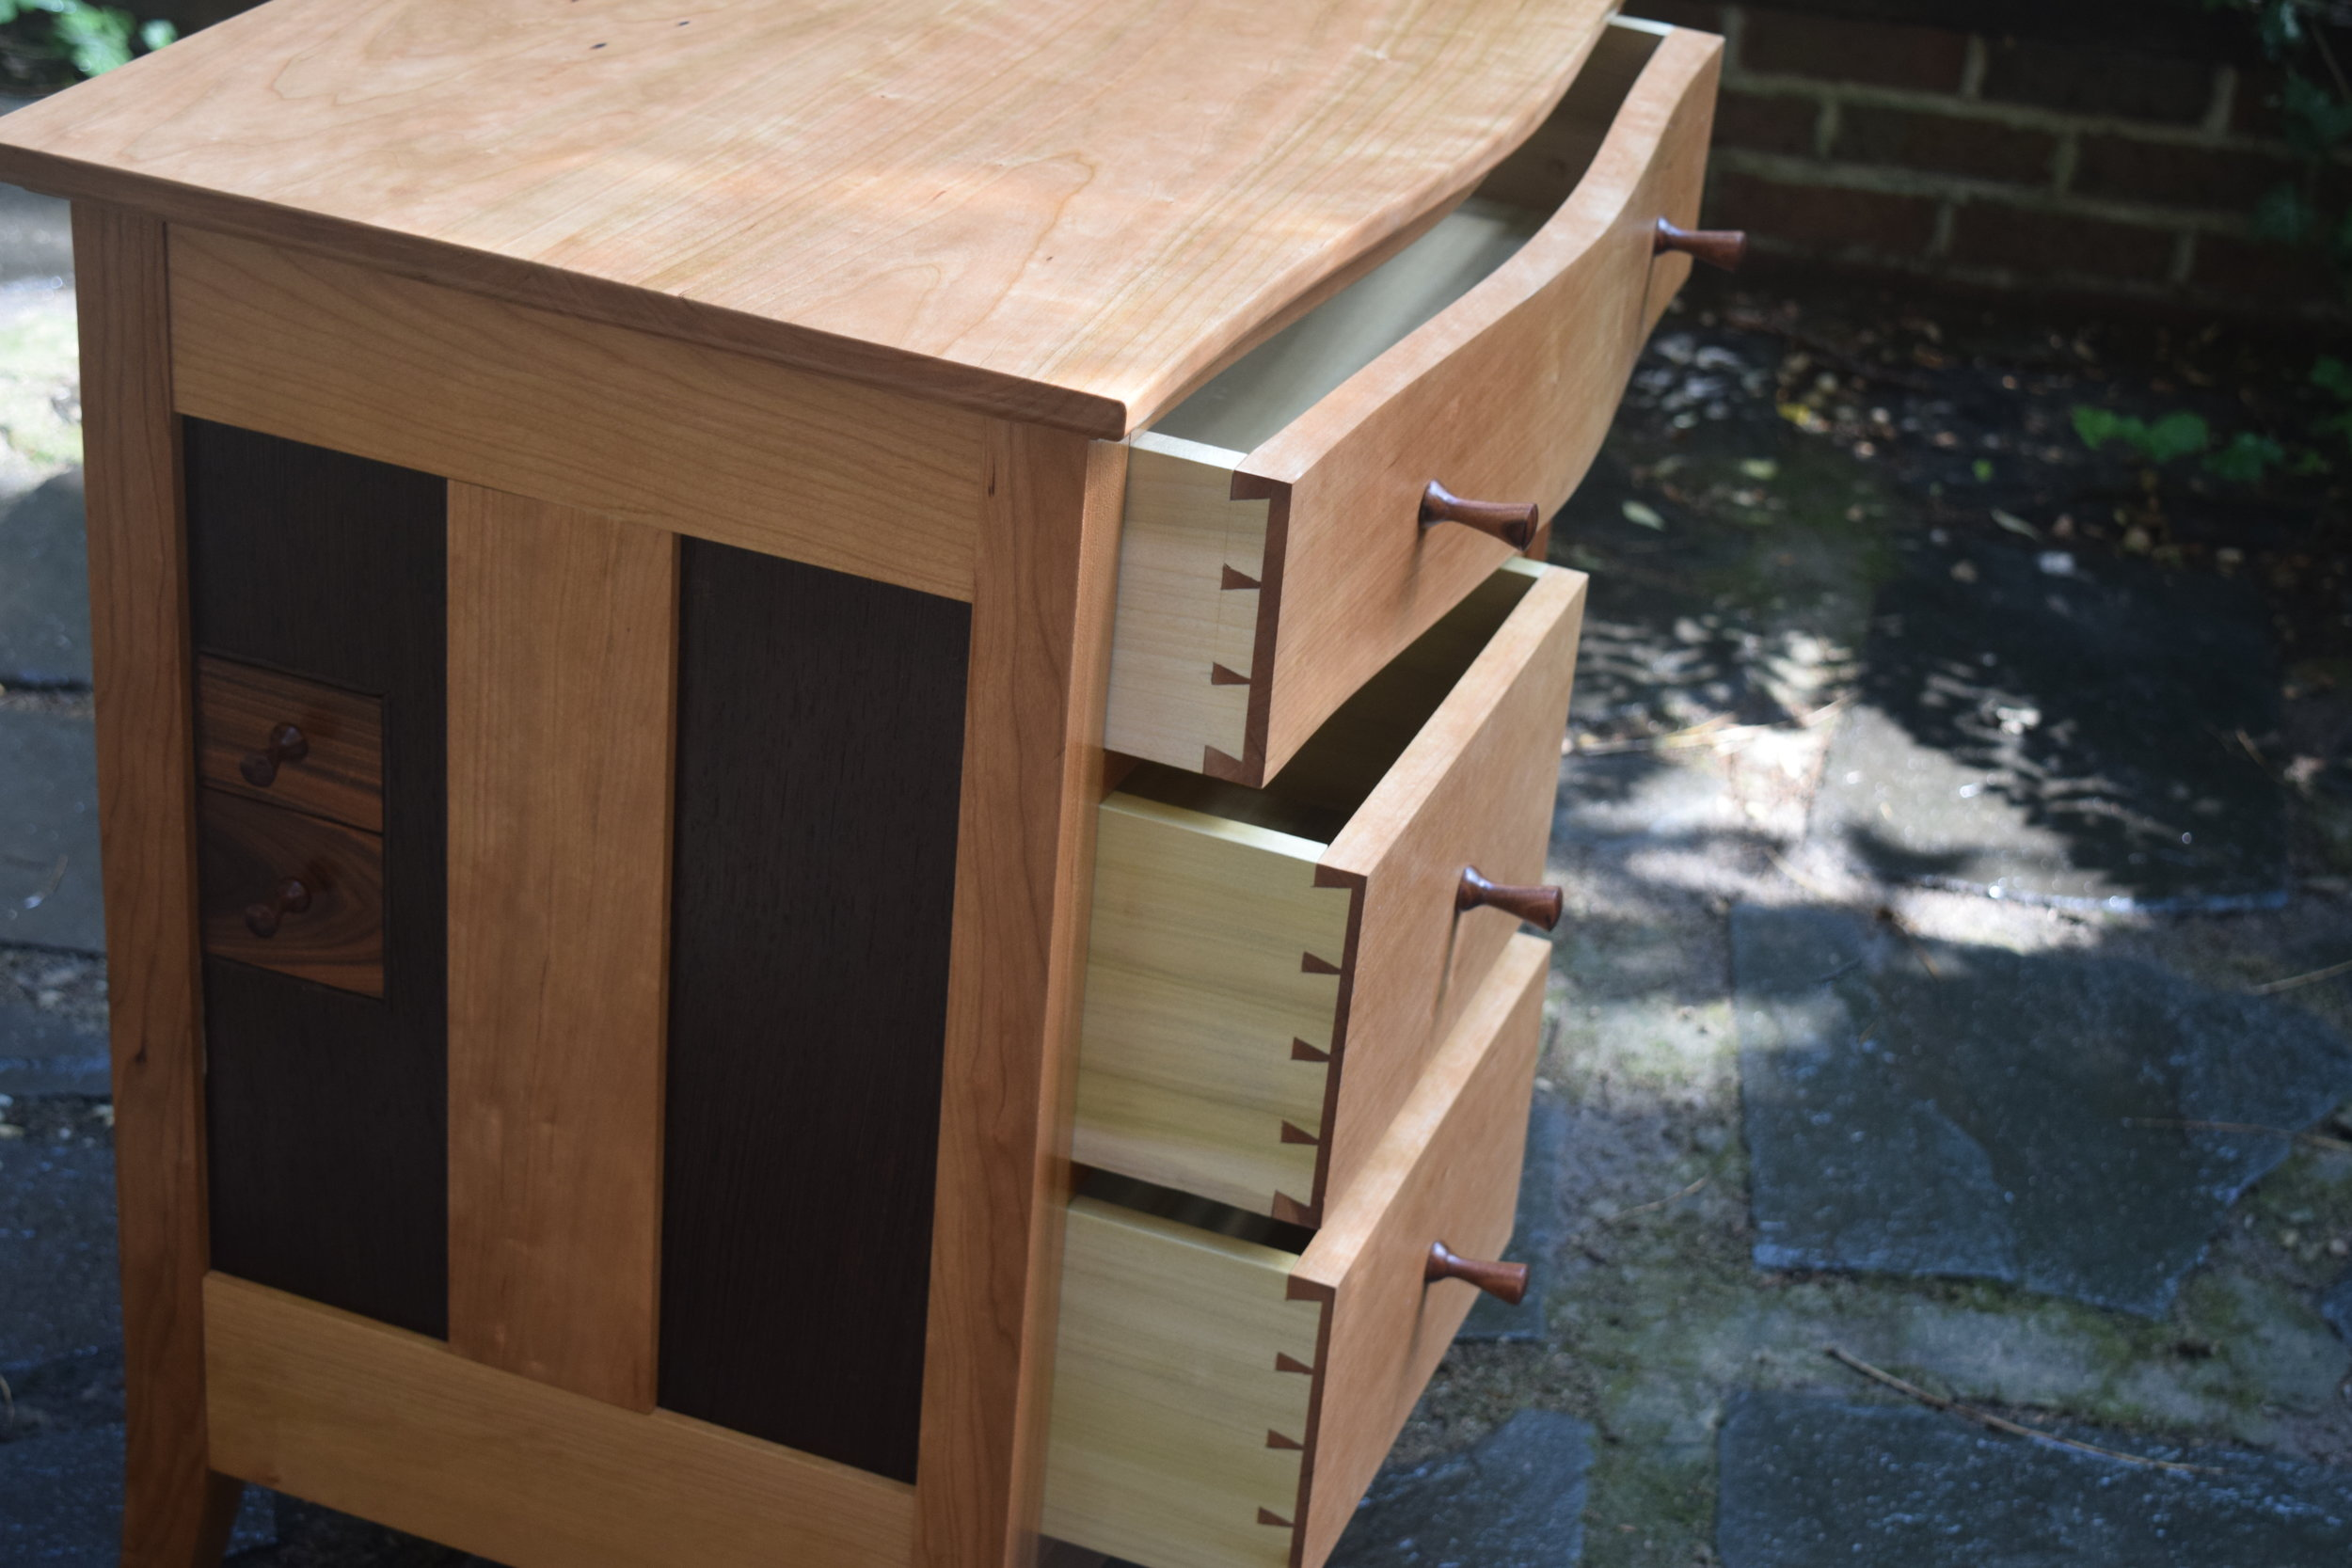 Hand cut dovetails.   Each drawer is individually fit to be snug, yet move easily.